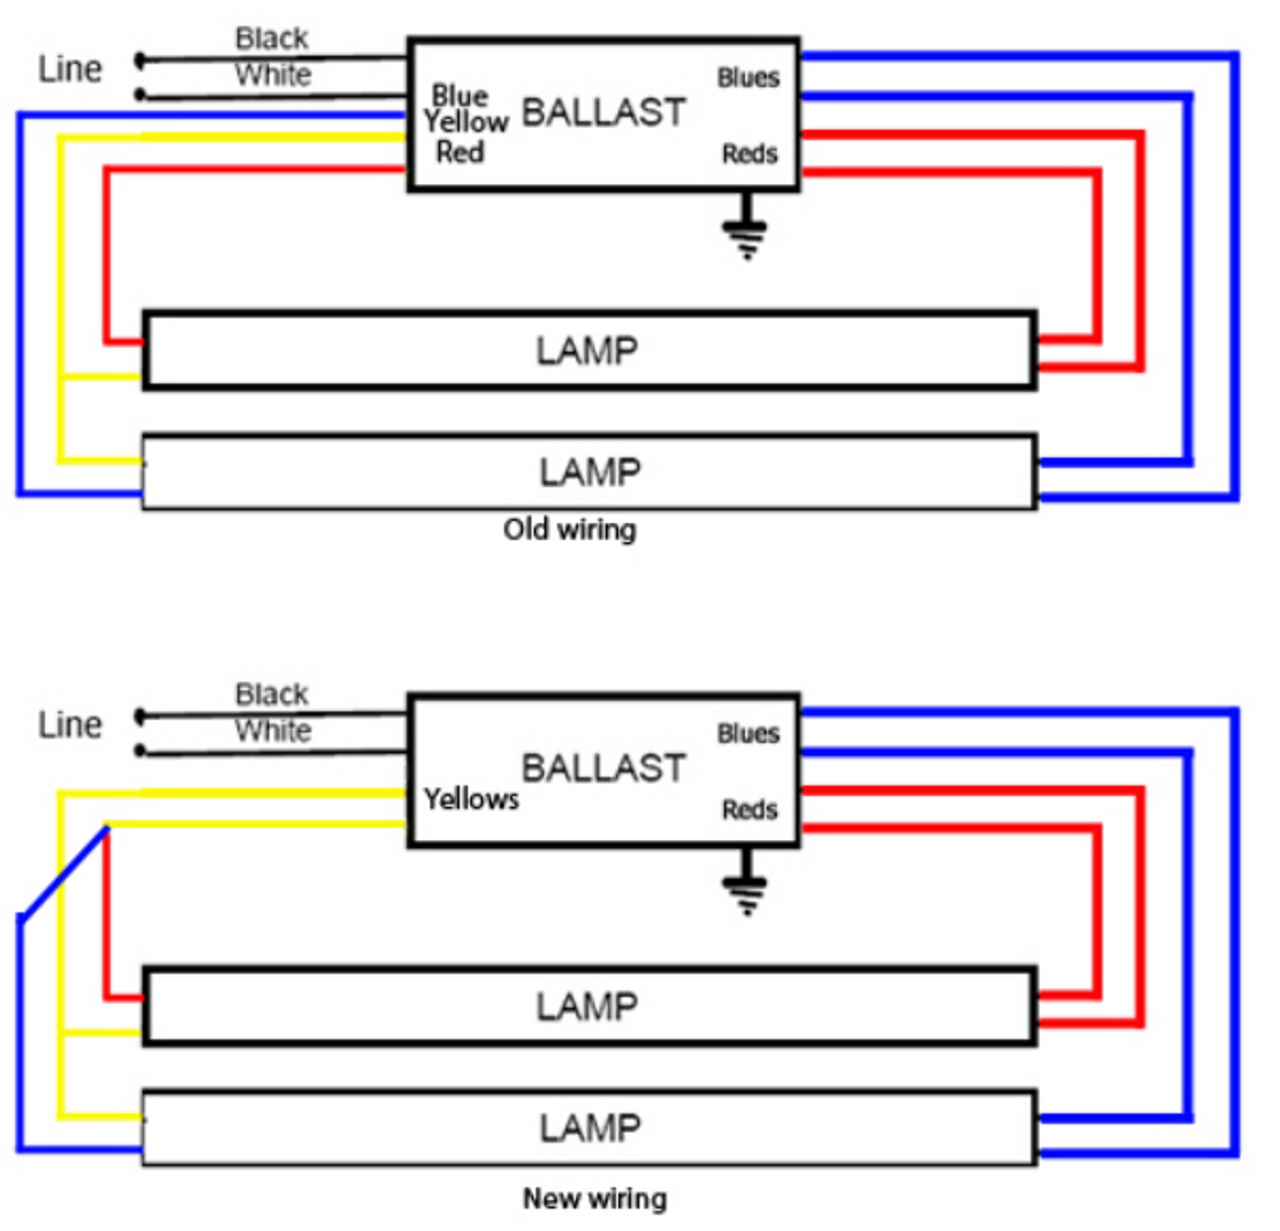 t12 replacement ballast wiring diagram single lamp ballast ballast bypass wiring diagram replace 4 lamp two series ballasts